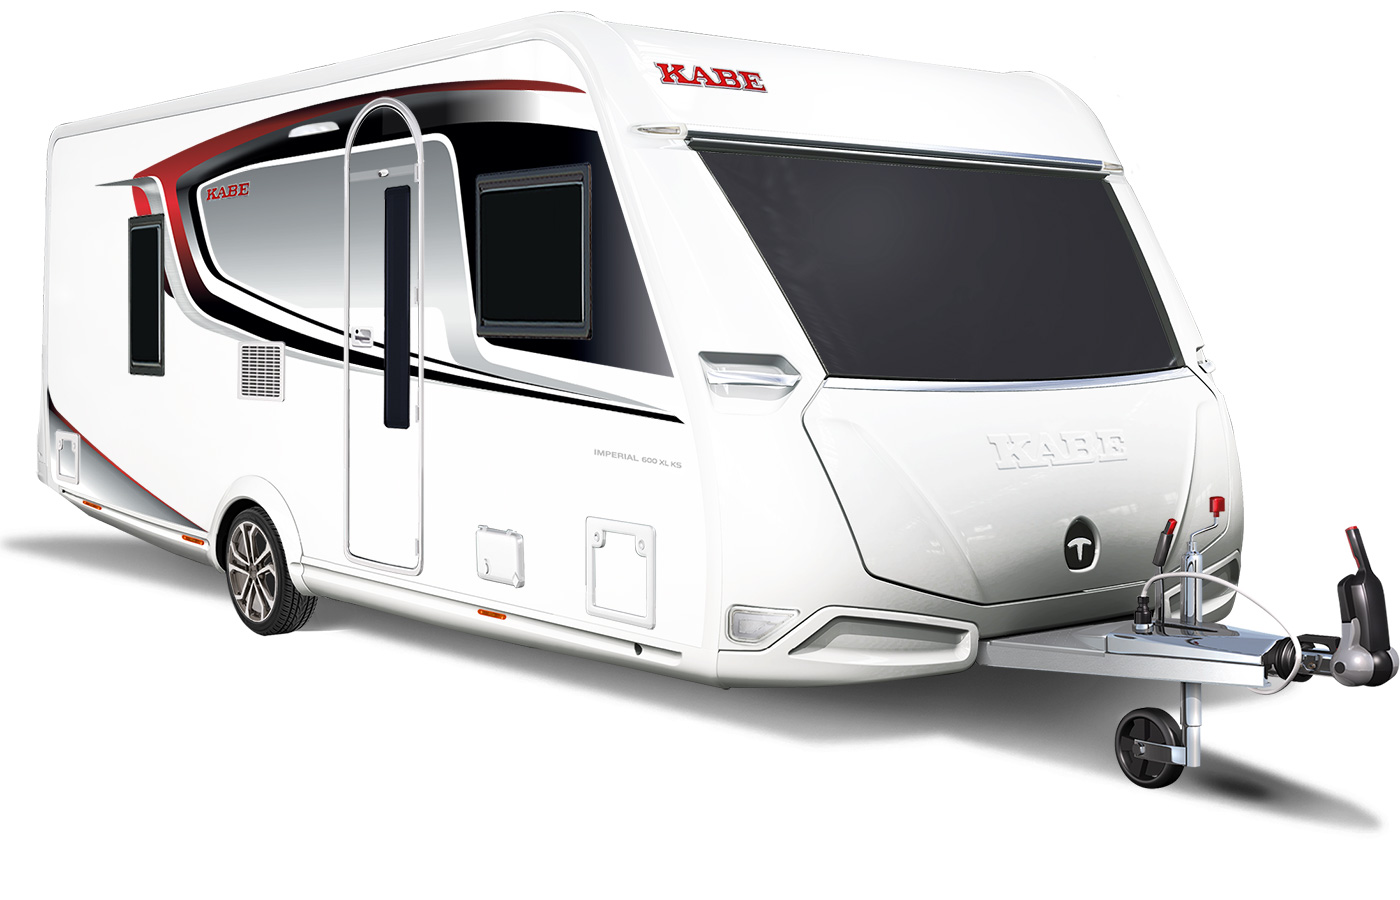 Kabe Imperial 600 XL